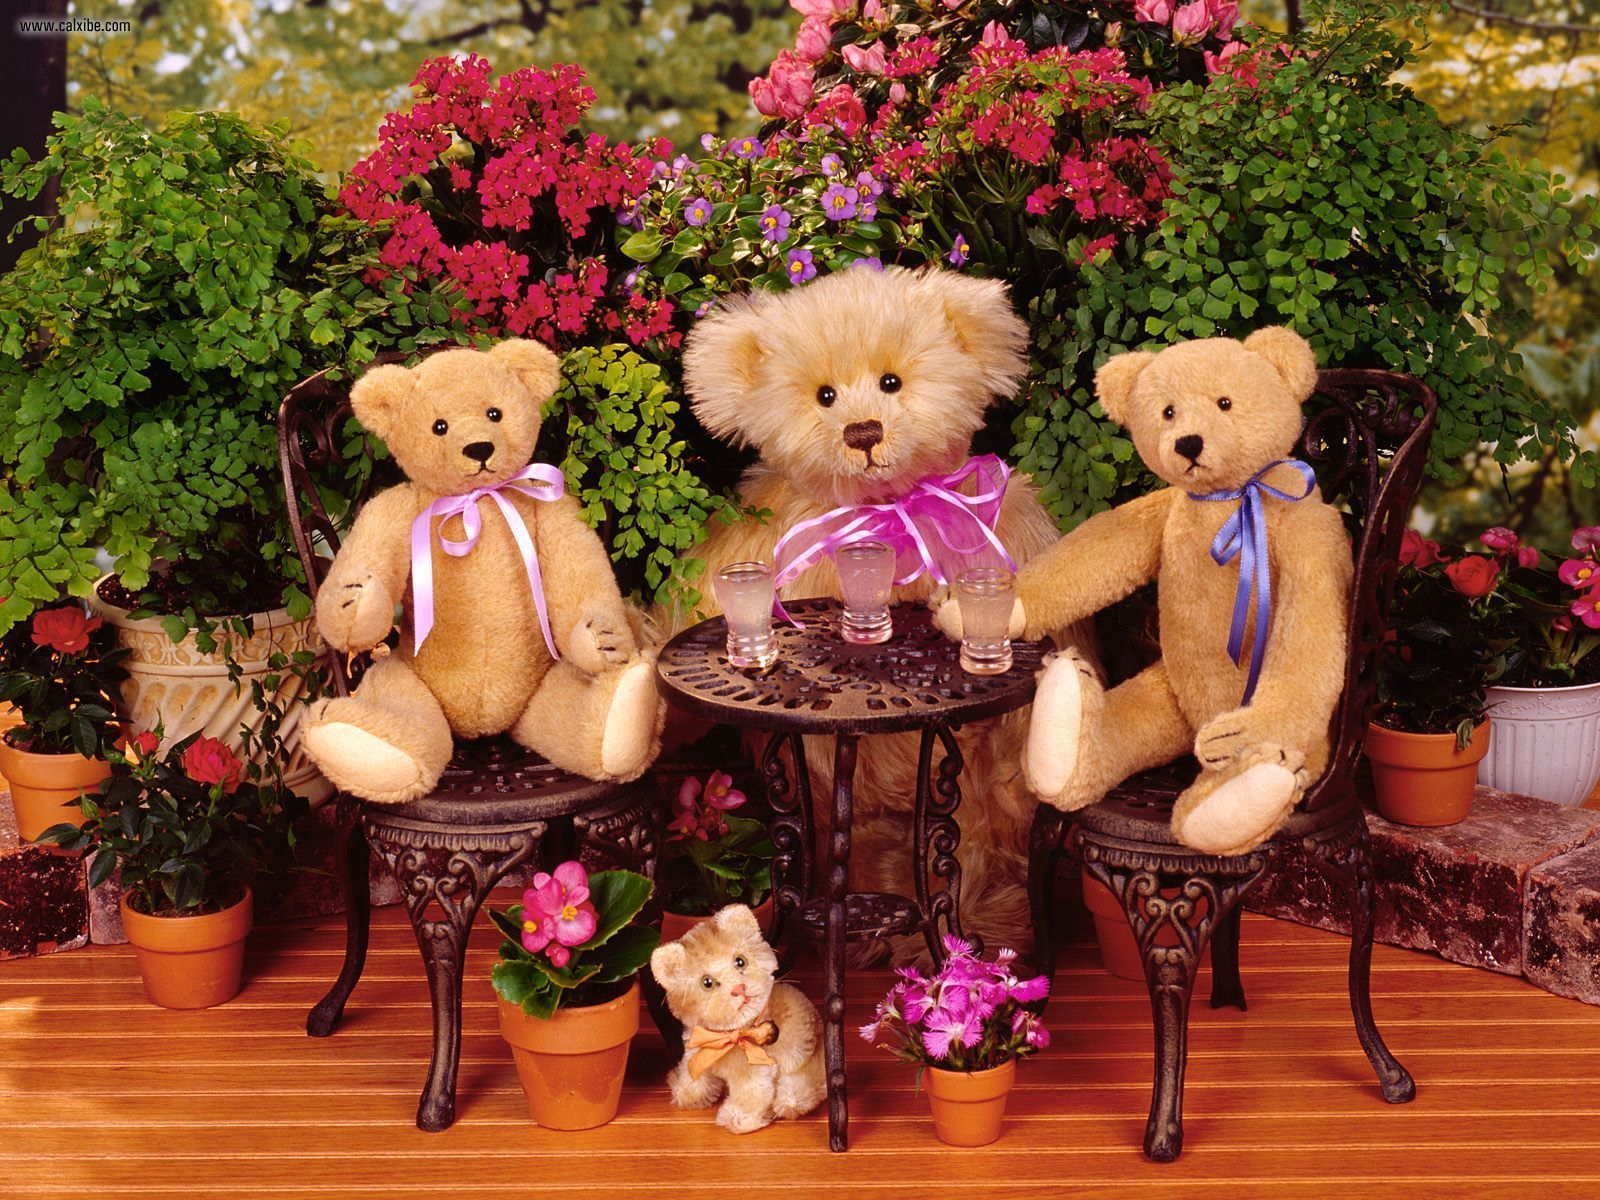 Teddy Bear Flowers Family Wallpaper